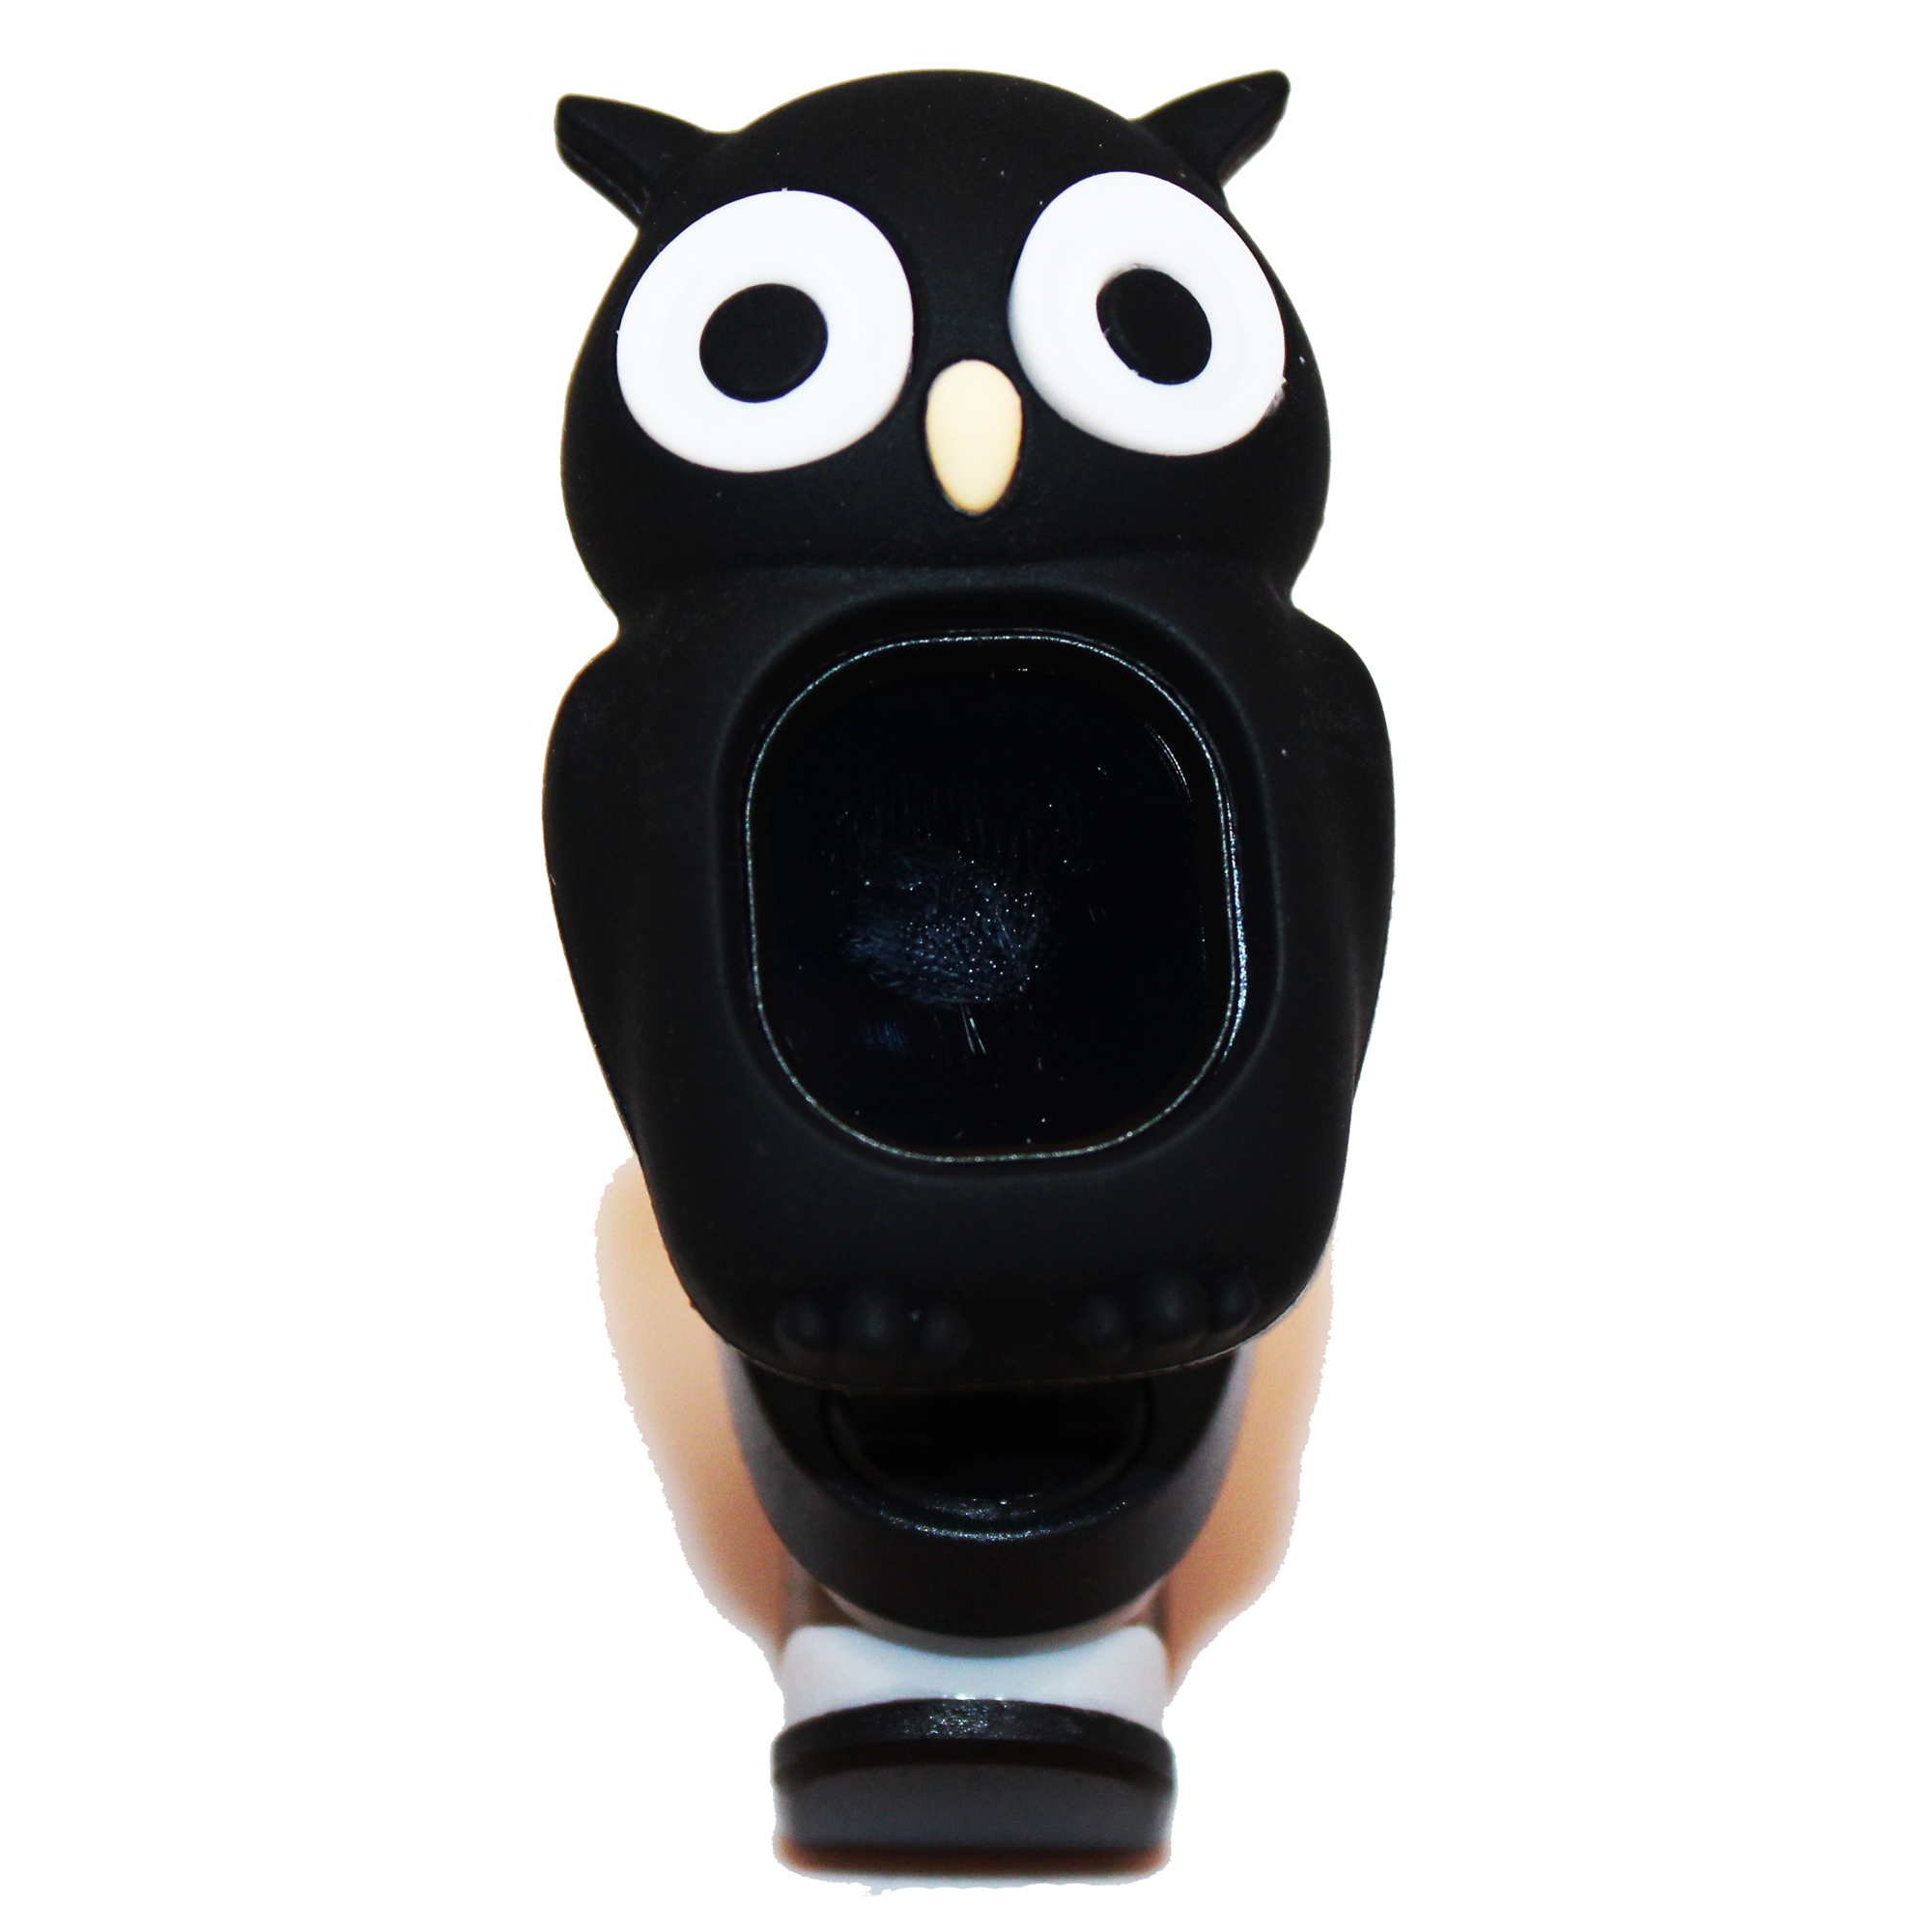 Swiff Cartoon Tuner B7 Owl ( Black )